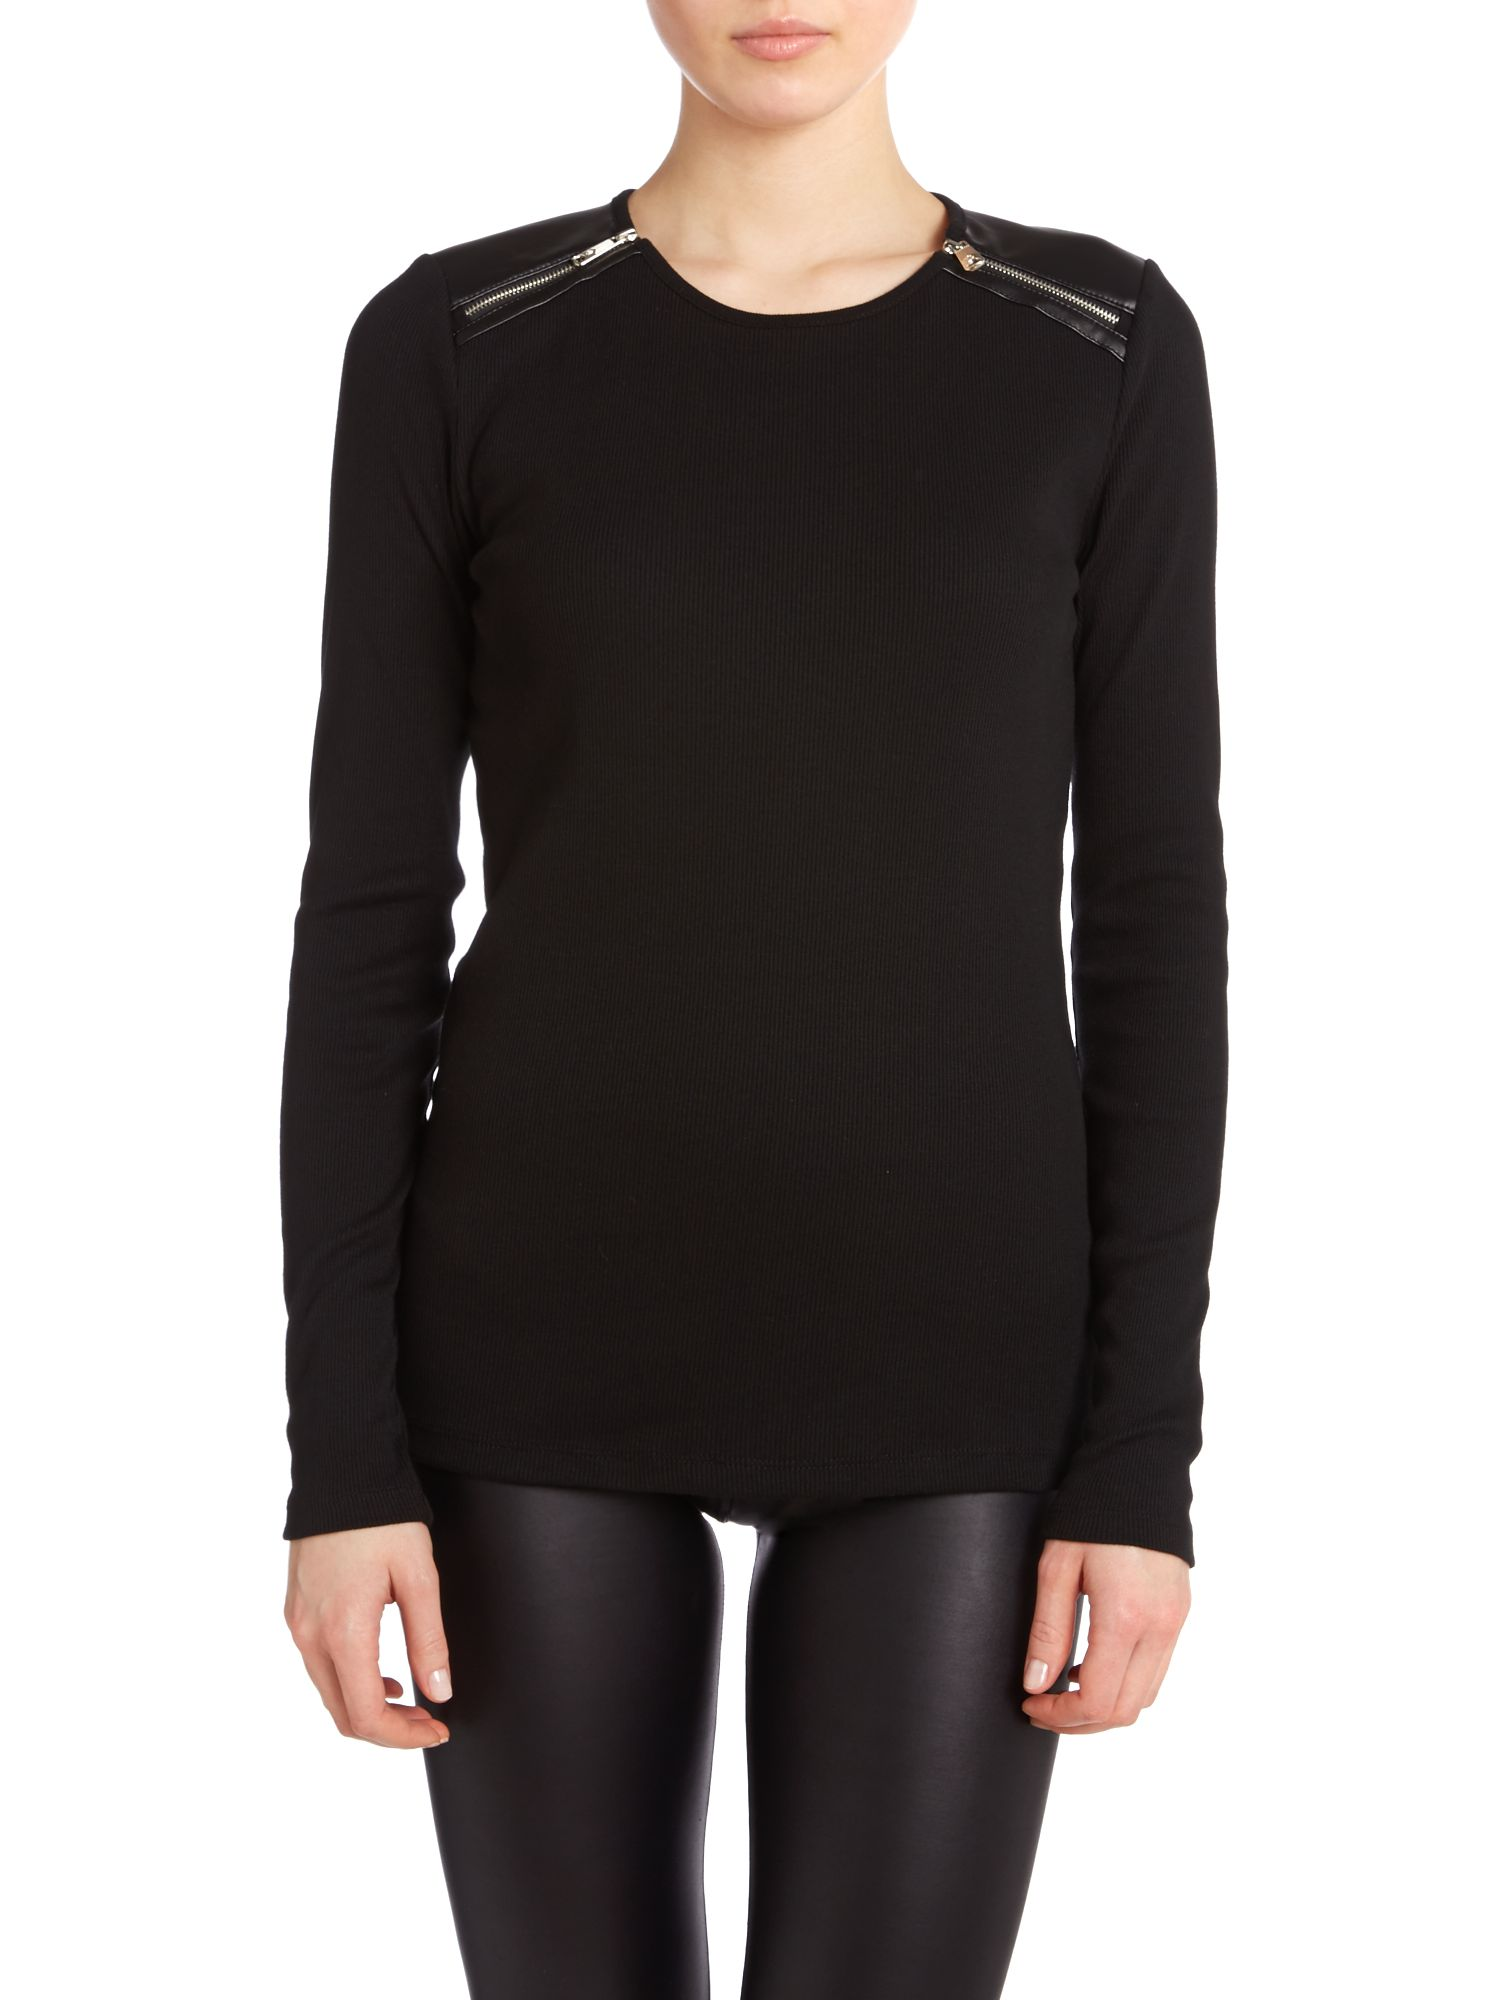 Long sleeved top with back zip